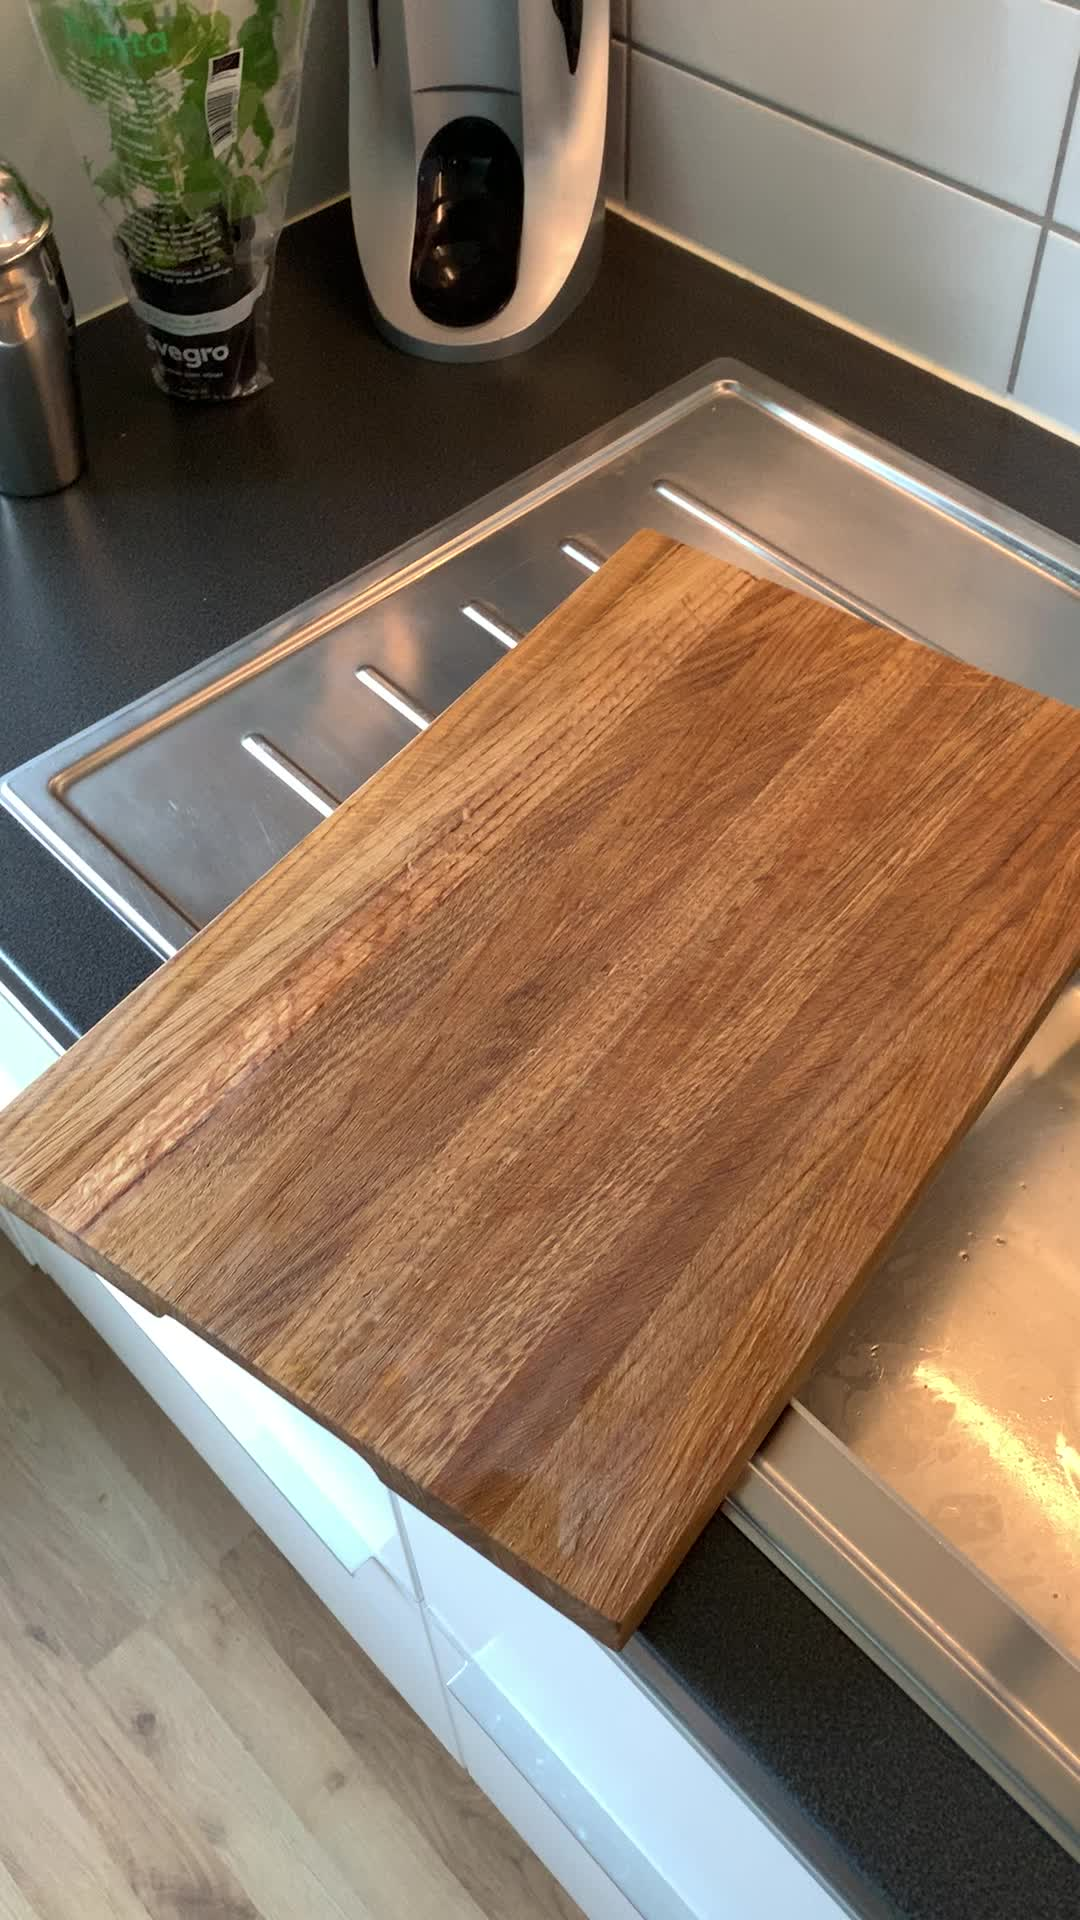 Cutting board GIFs